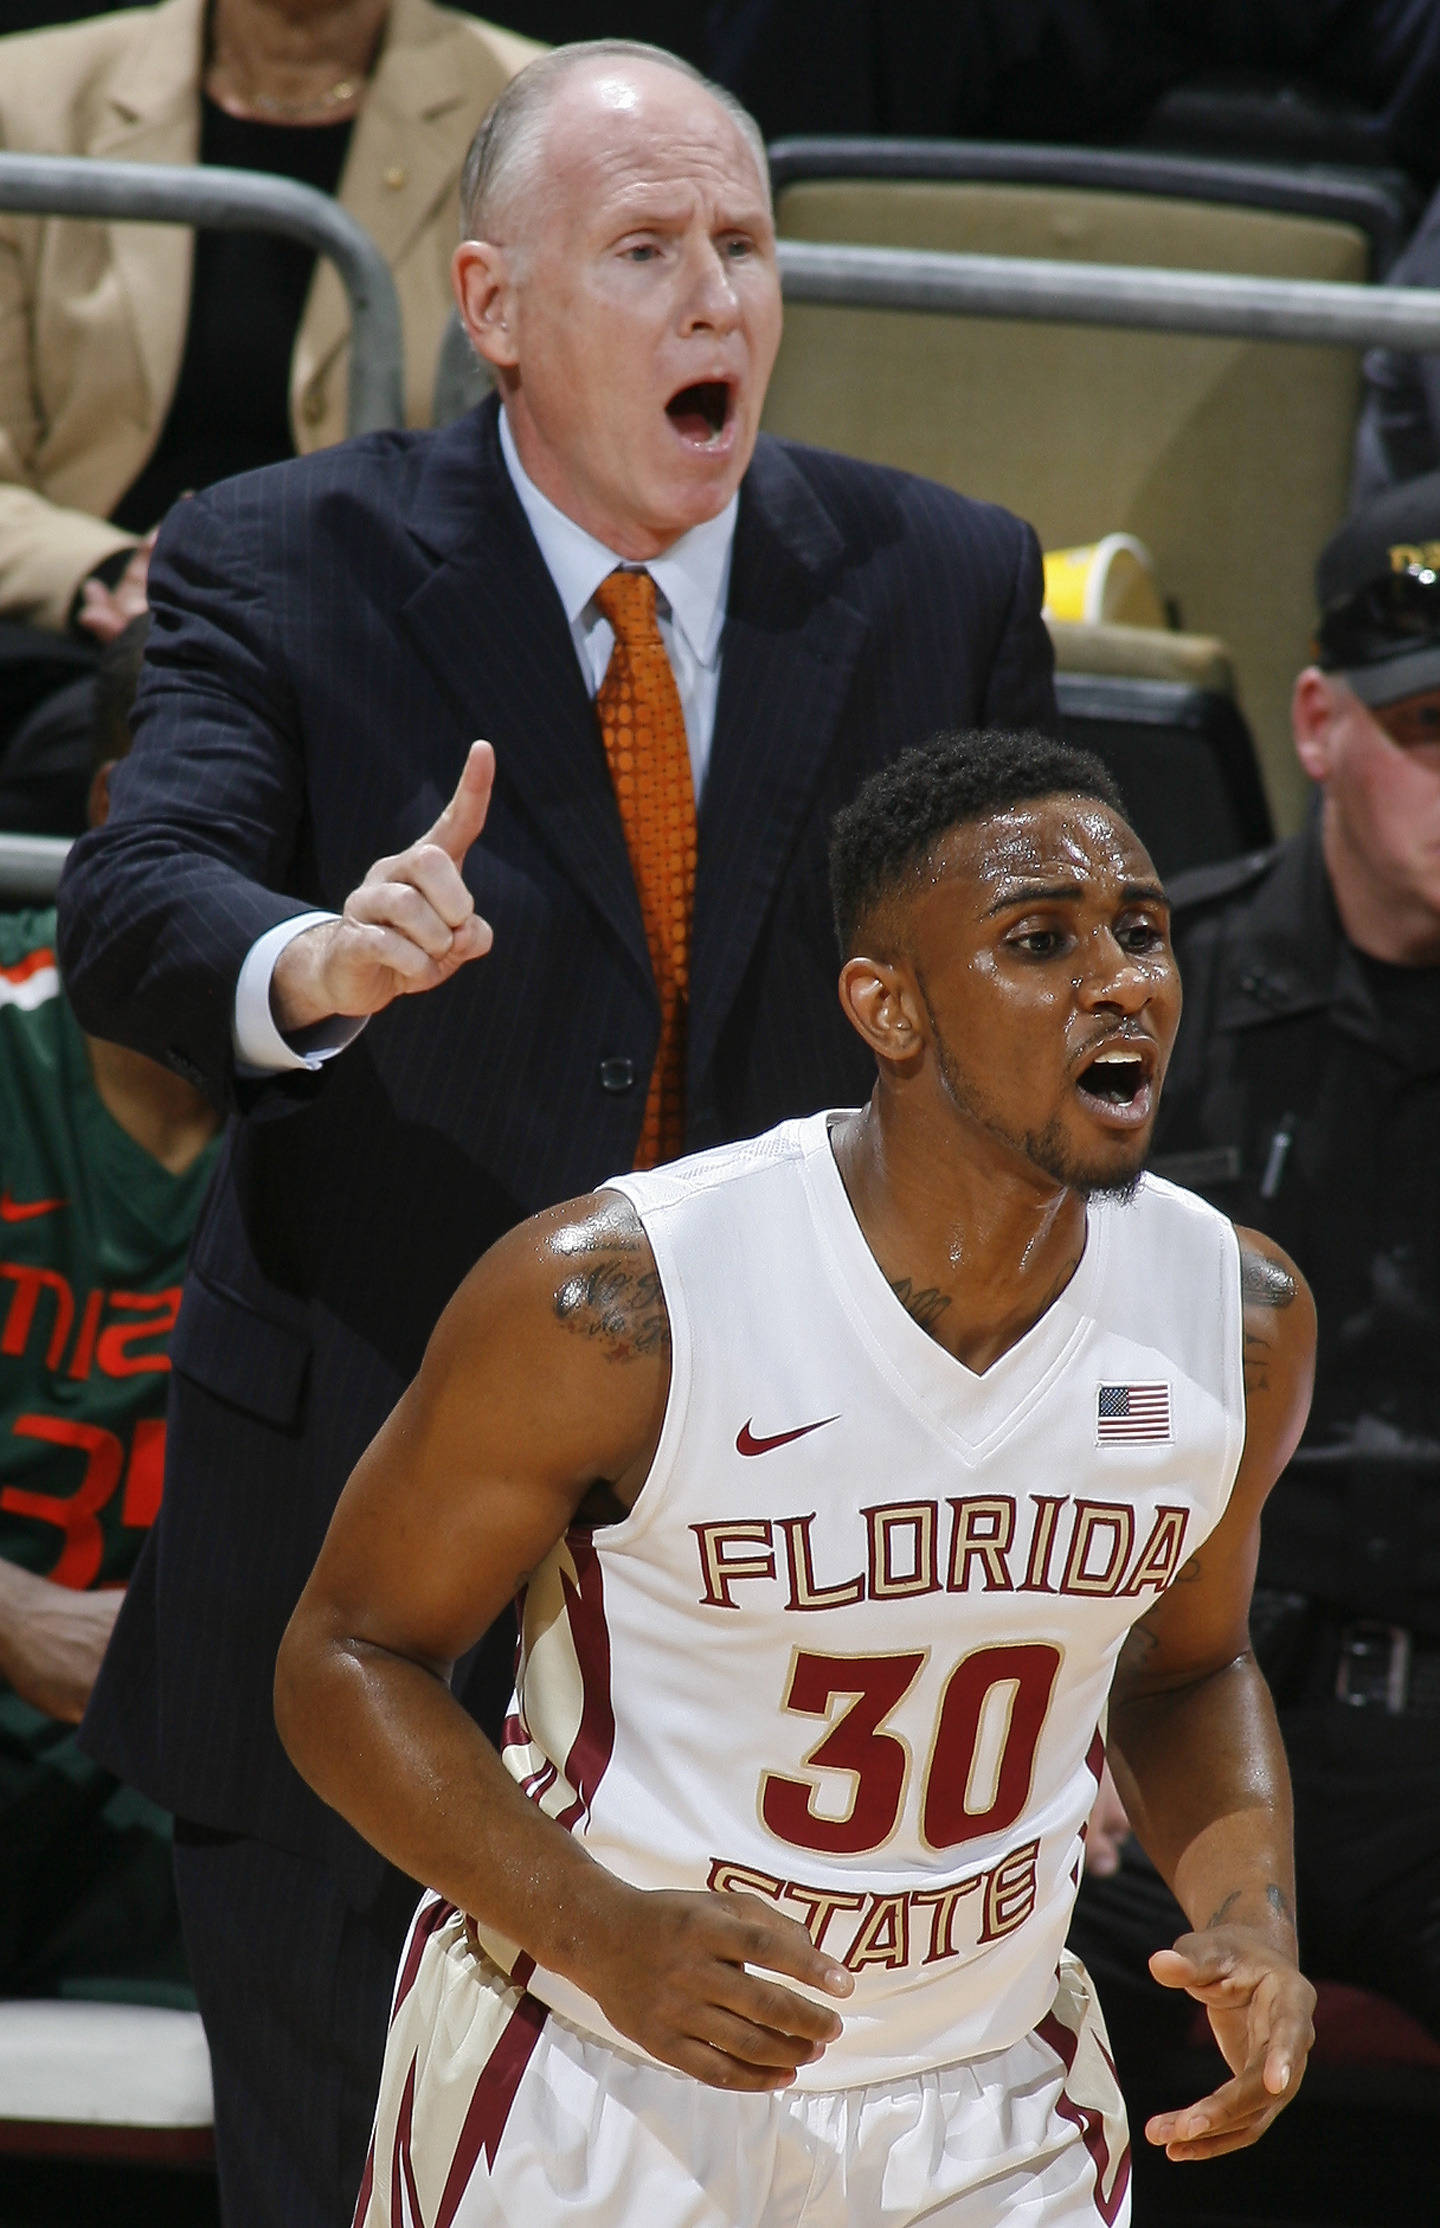 Feb 10, 2014; Tallahassee, FL, USA; Miami Hurricanes Head Coach Jim Larranaga  calls a play as Seminoles guard Ian Miller (30) reacts in the first half. Phil Sears-USA TODAY Sports